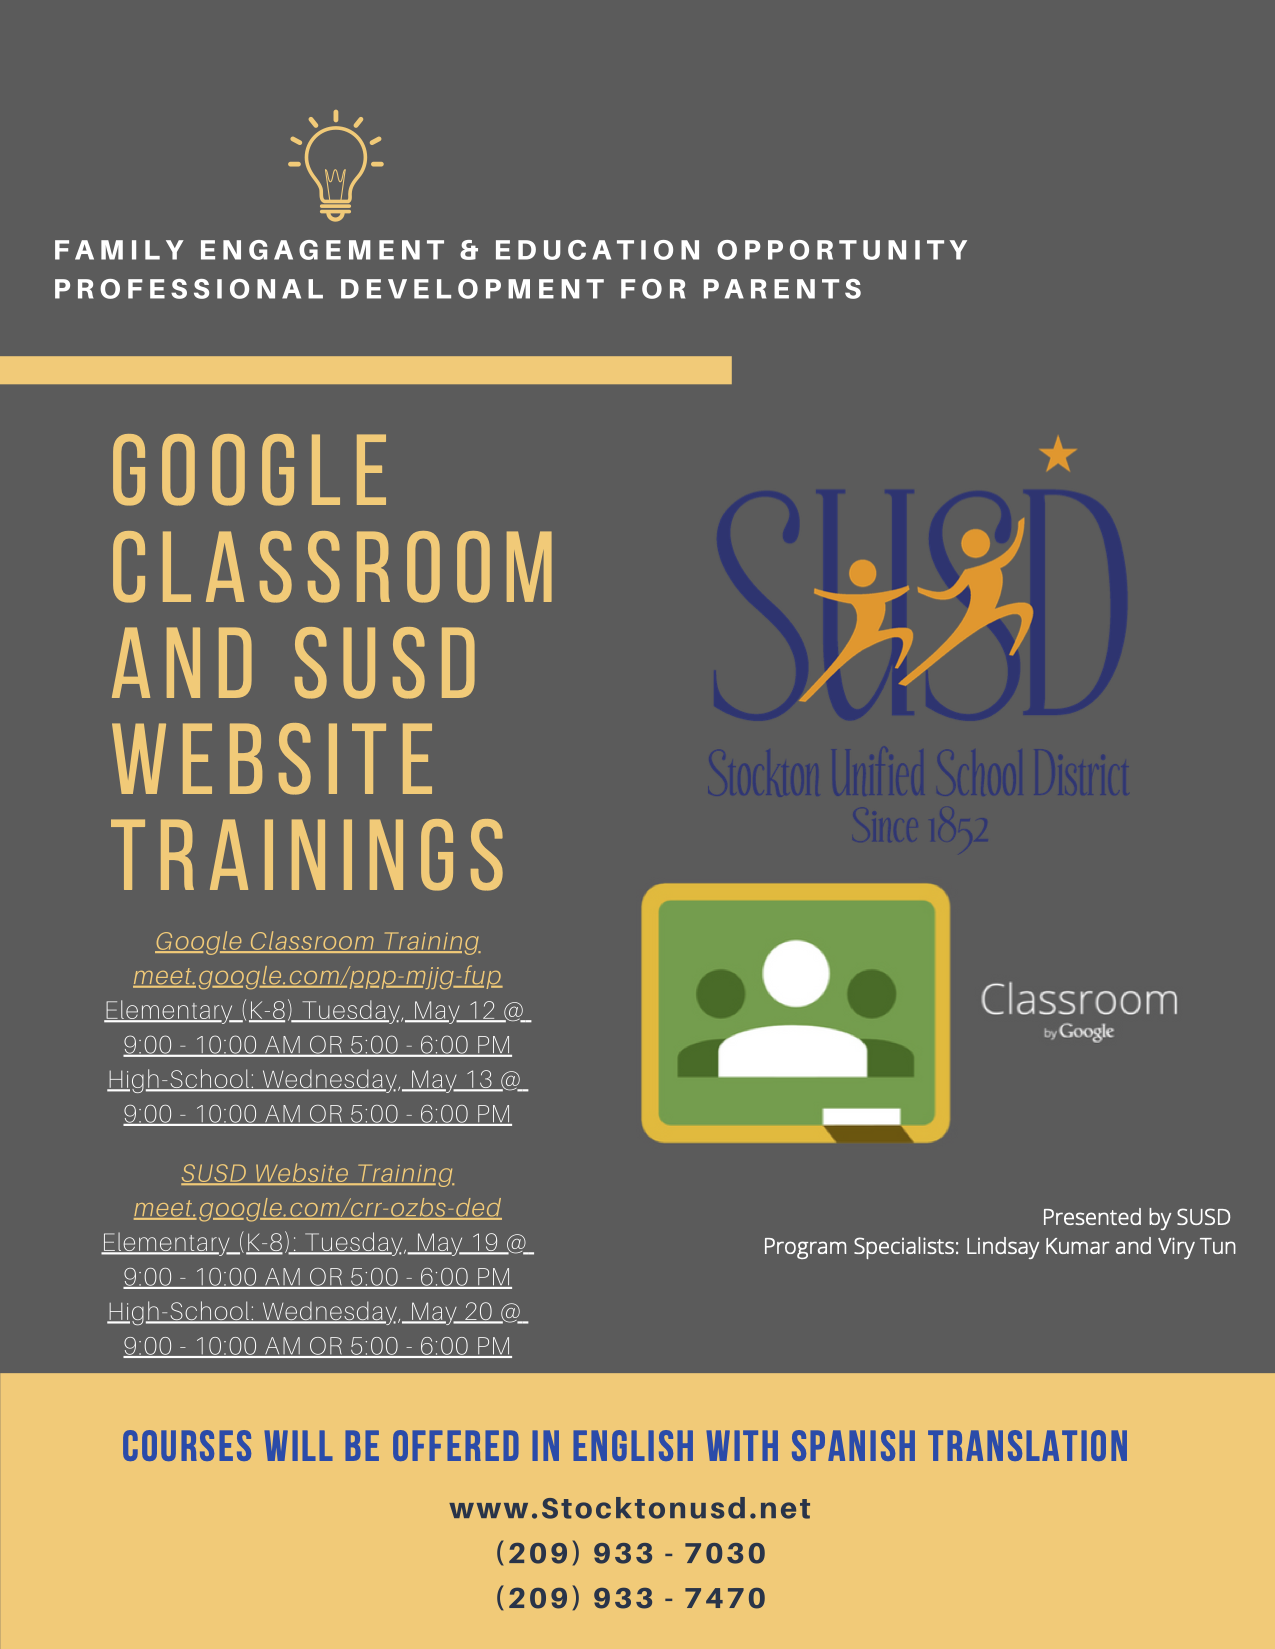 Google Classroom and SUSD Website Trainings